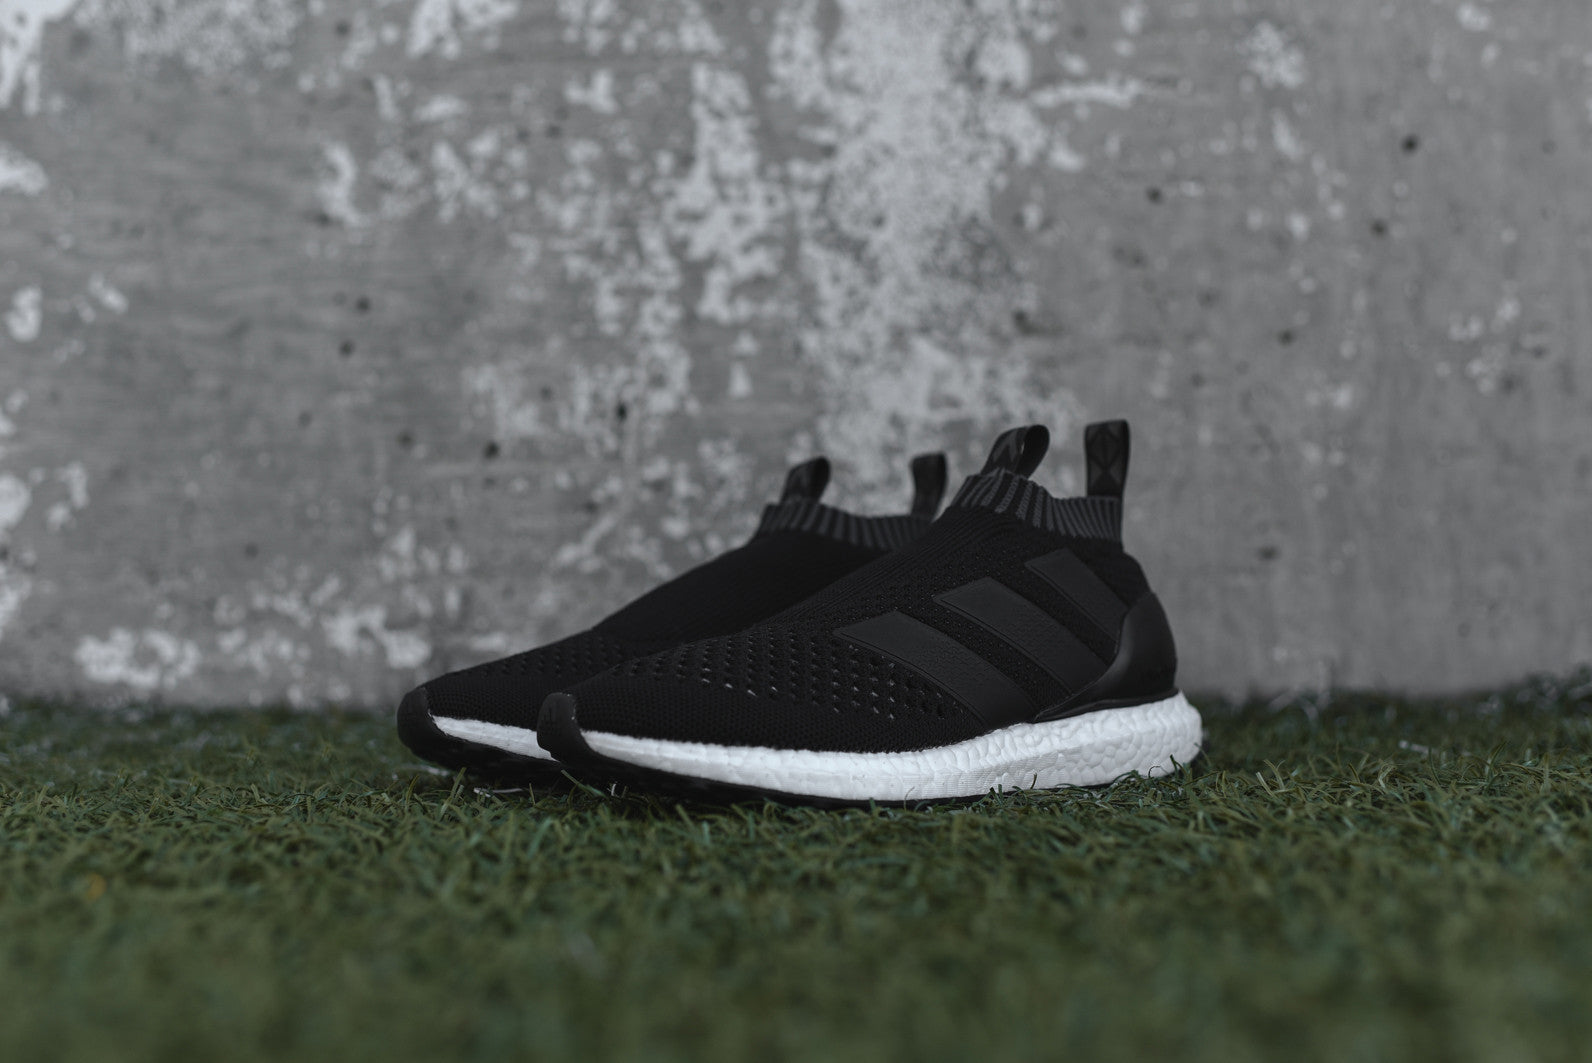 lowest price 11dc5 5fbd7 Thoughts on the adidas ACE 16+ PureControl Ultra Boost? W2C ...